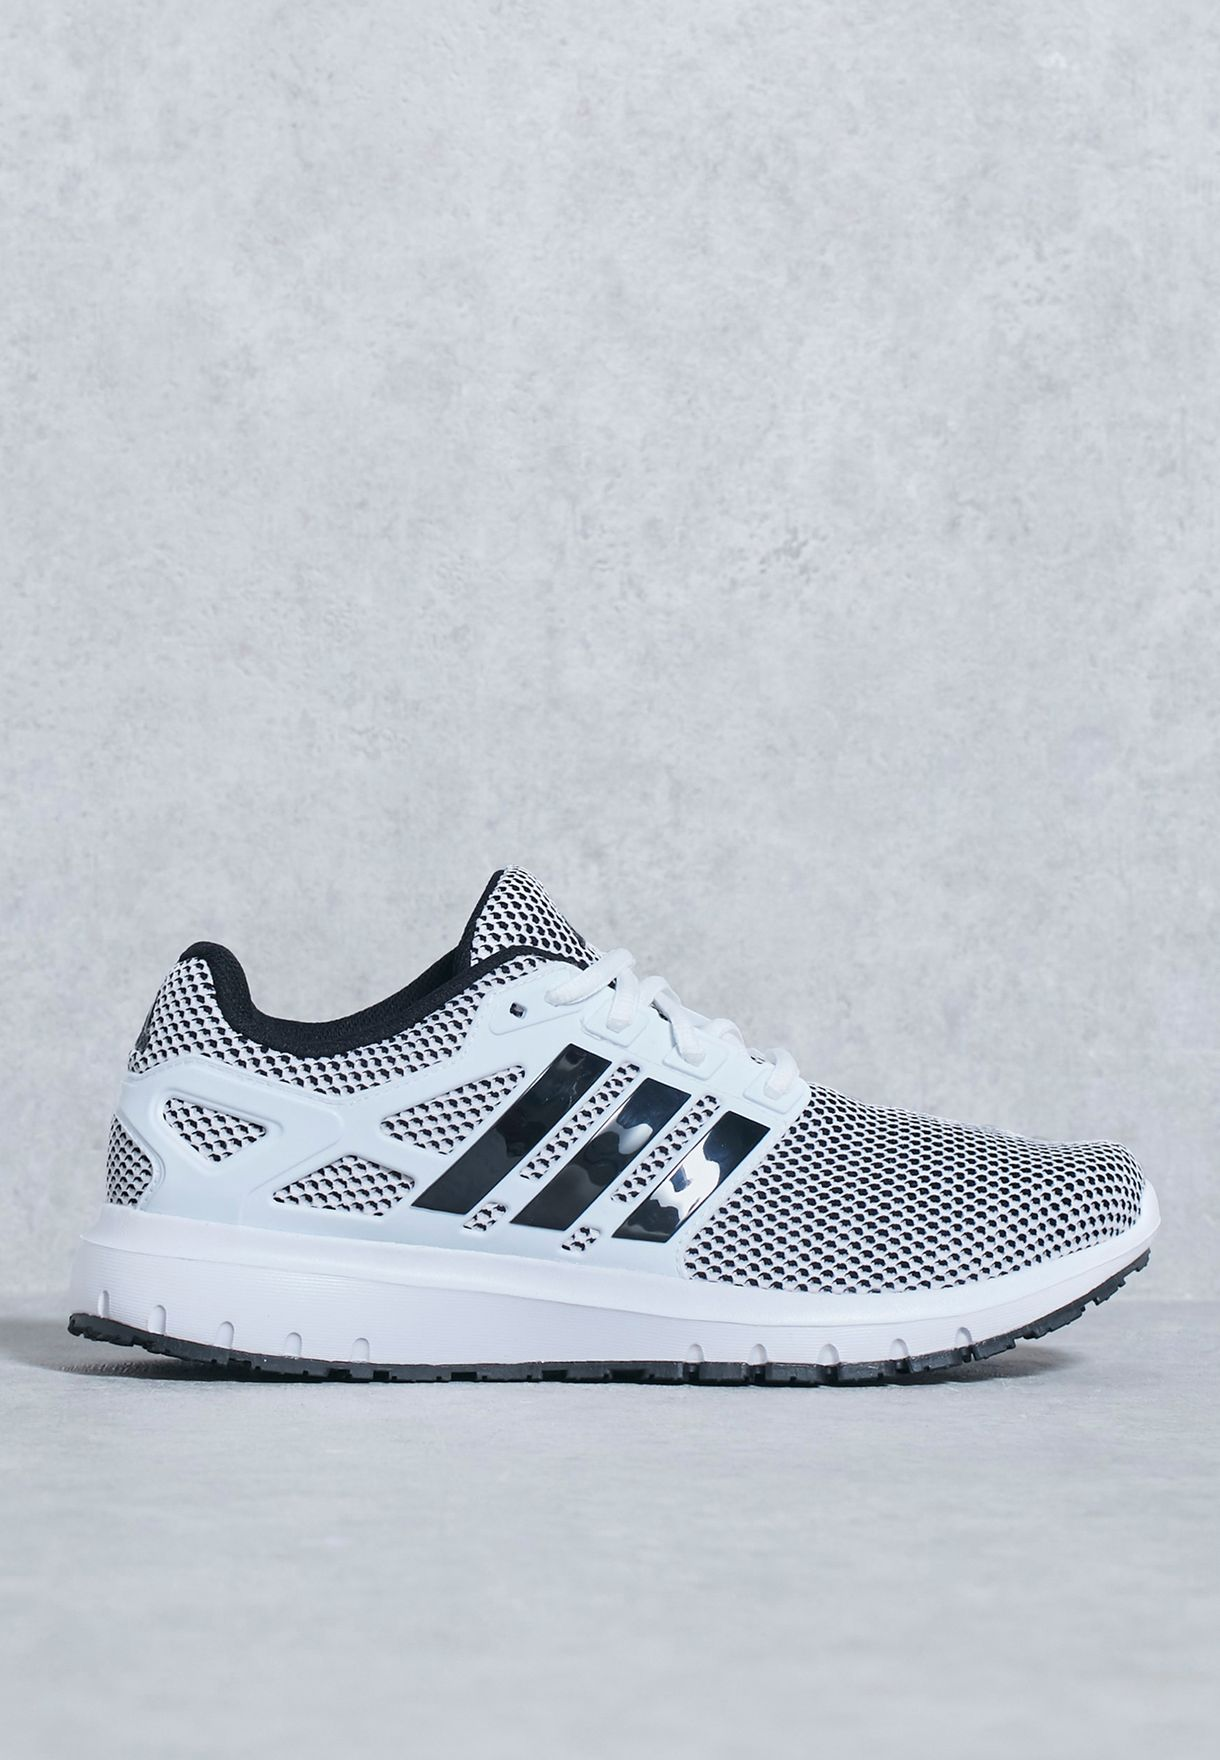 new style 3cdeb fdd32 Shop adidas monochrome Energy Cloud M CG3007 for Men in Saudi - AD476SH90TIR